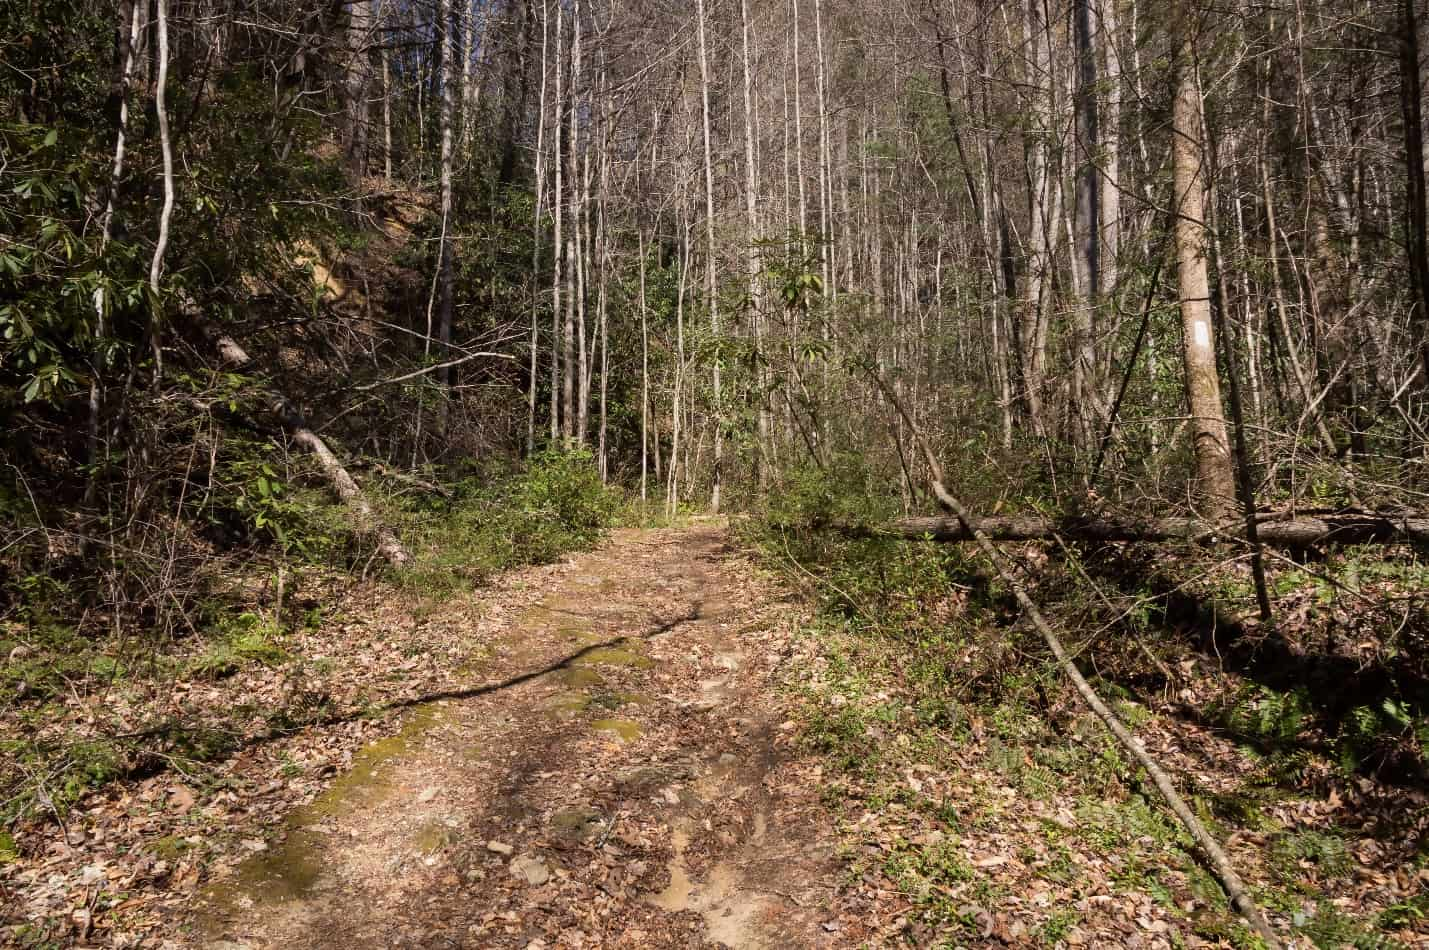 The Foothills Trail